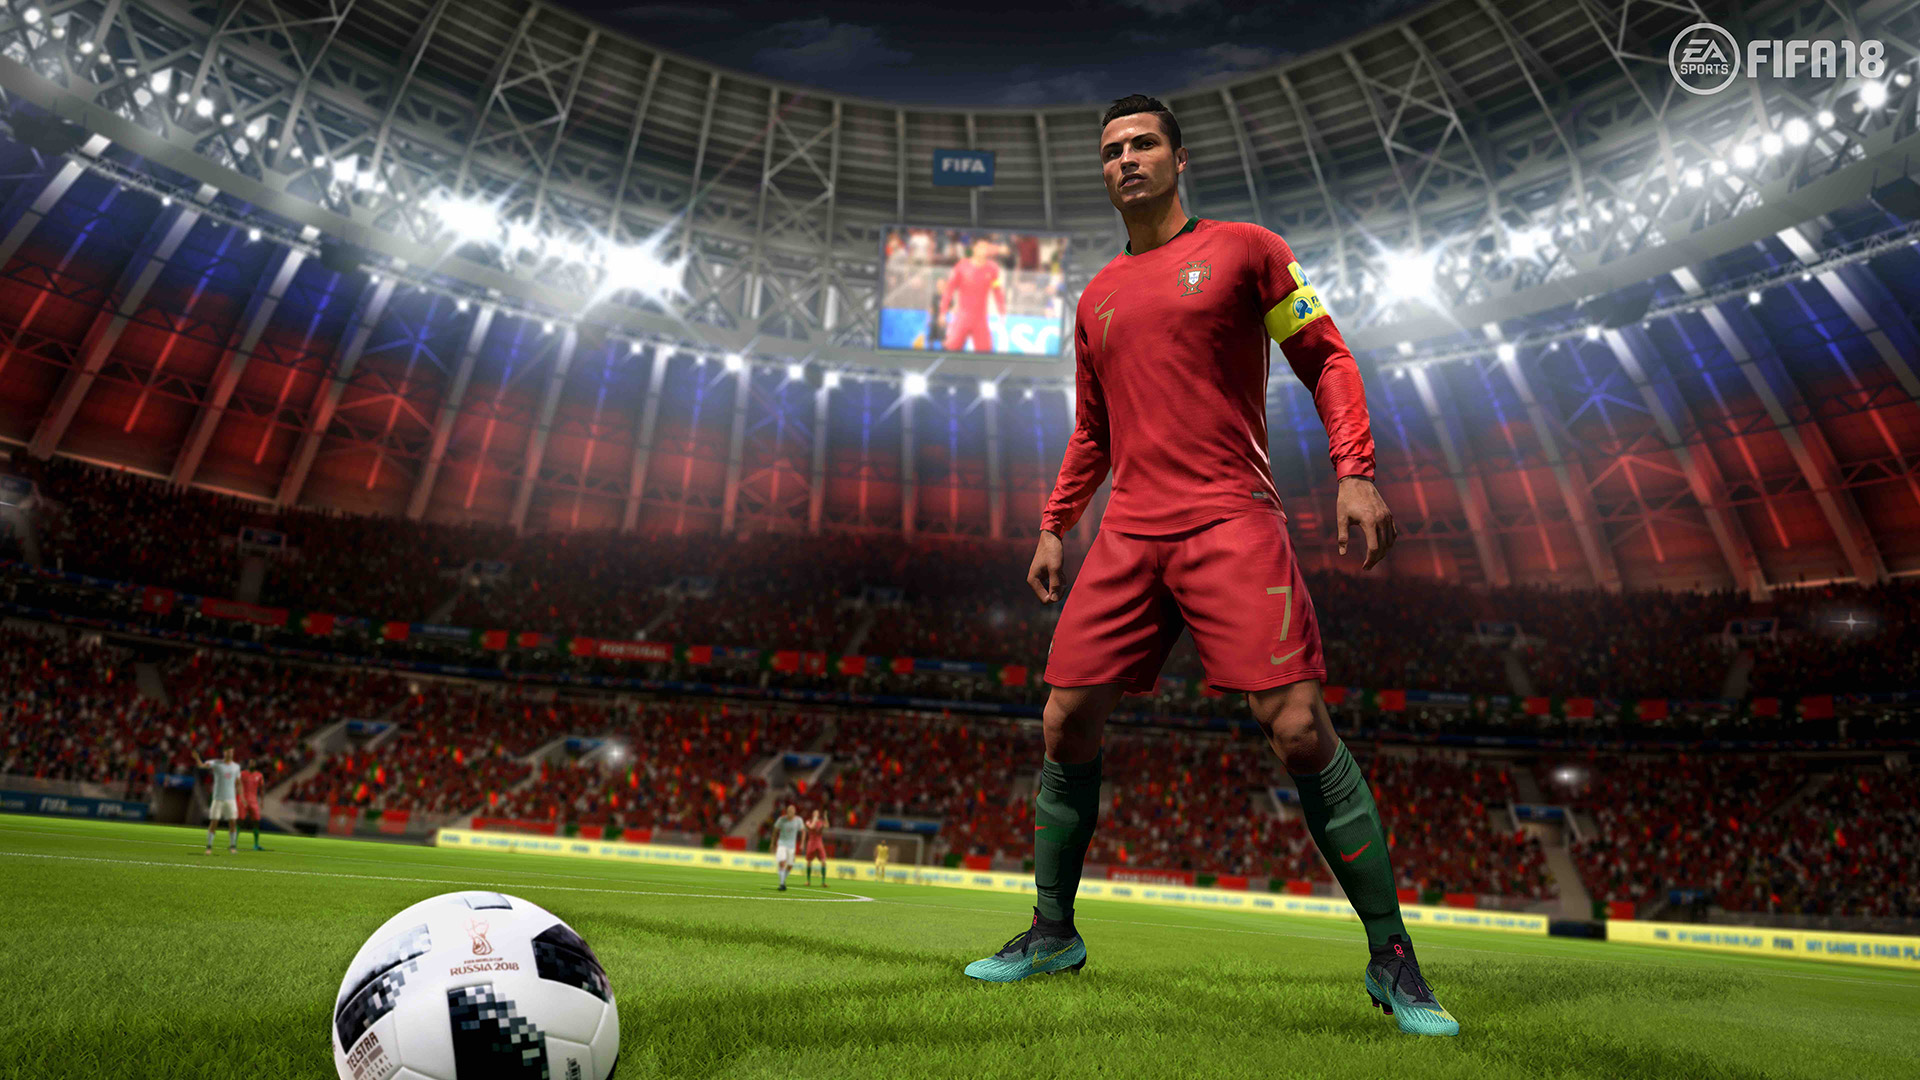 Fifa 18 World Cup Video Game When Is It Released How To